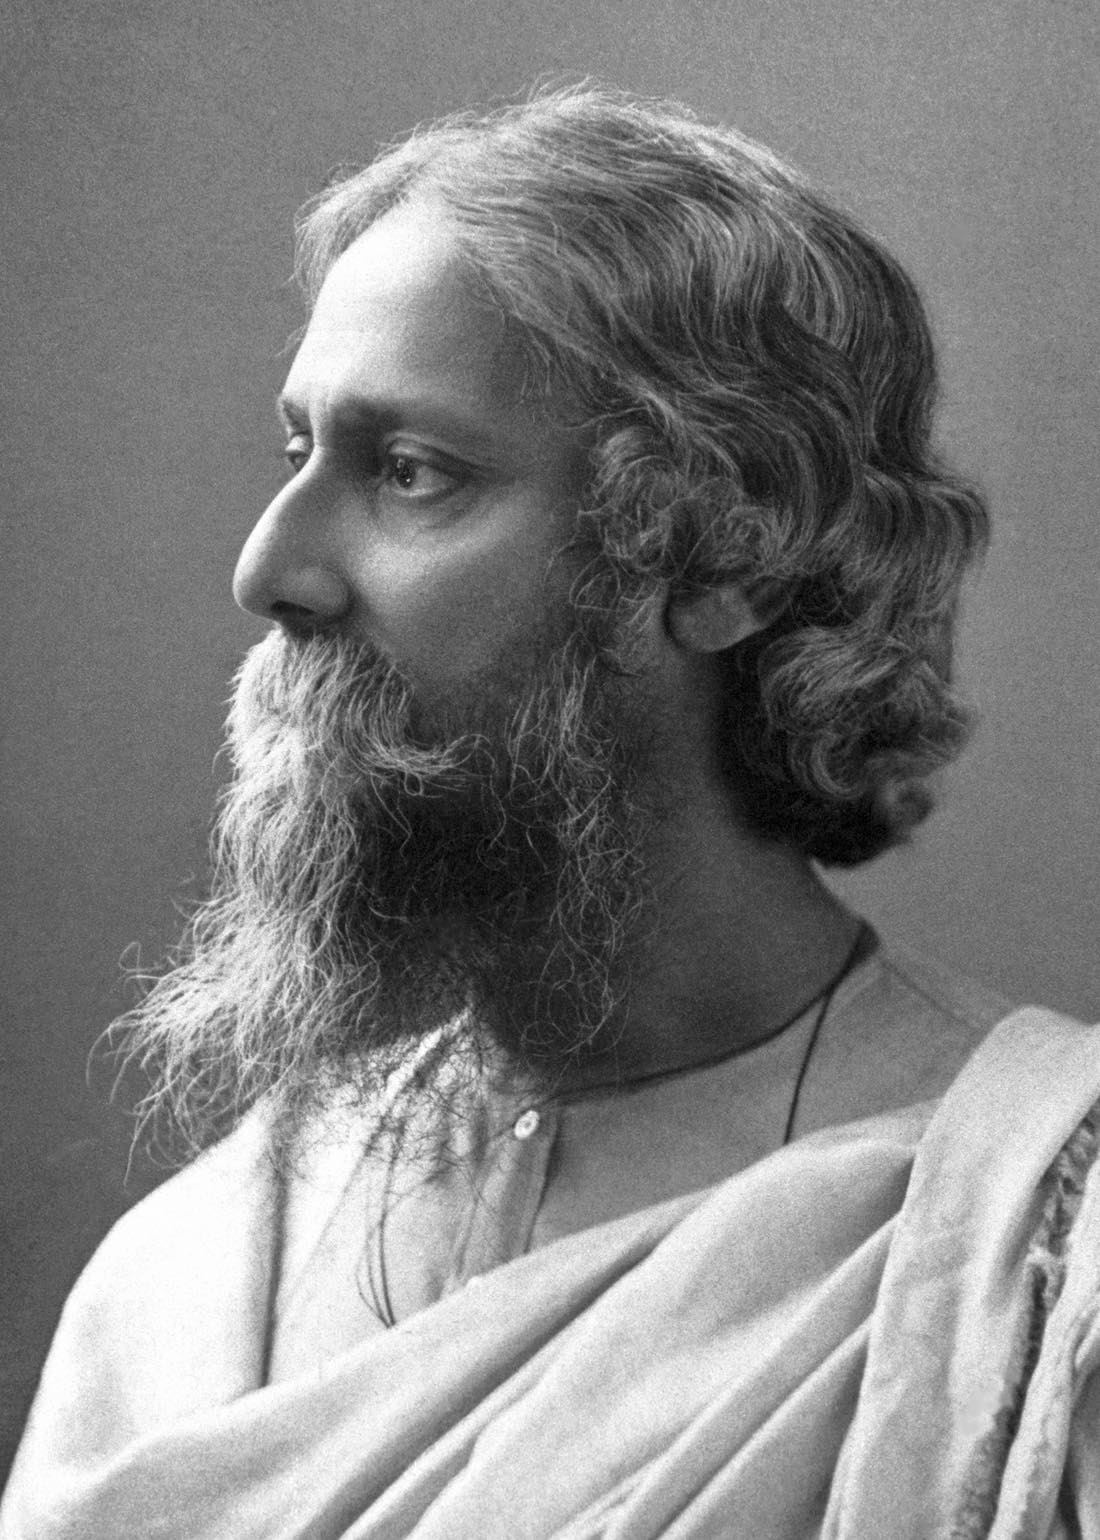 the nobel prize on rabindranath tagore born onthisday the nobel prize on rabindranath tagore born onthisday 155 years ago in calcutta awarded the nobelprize in literature 1913